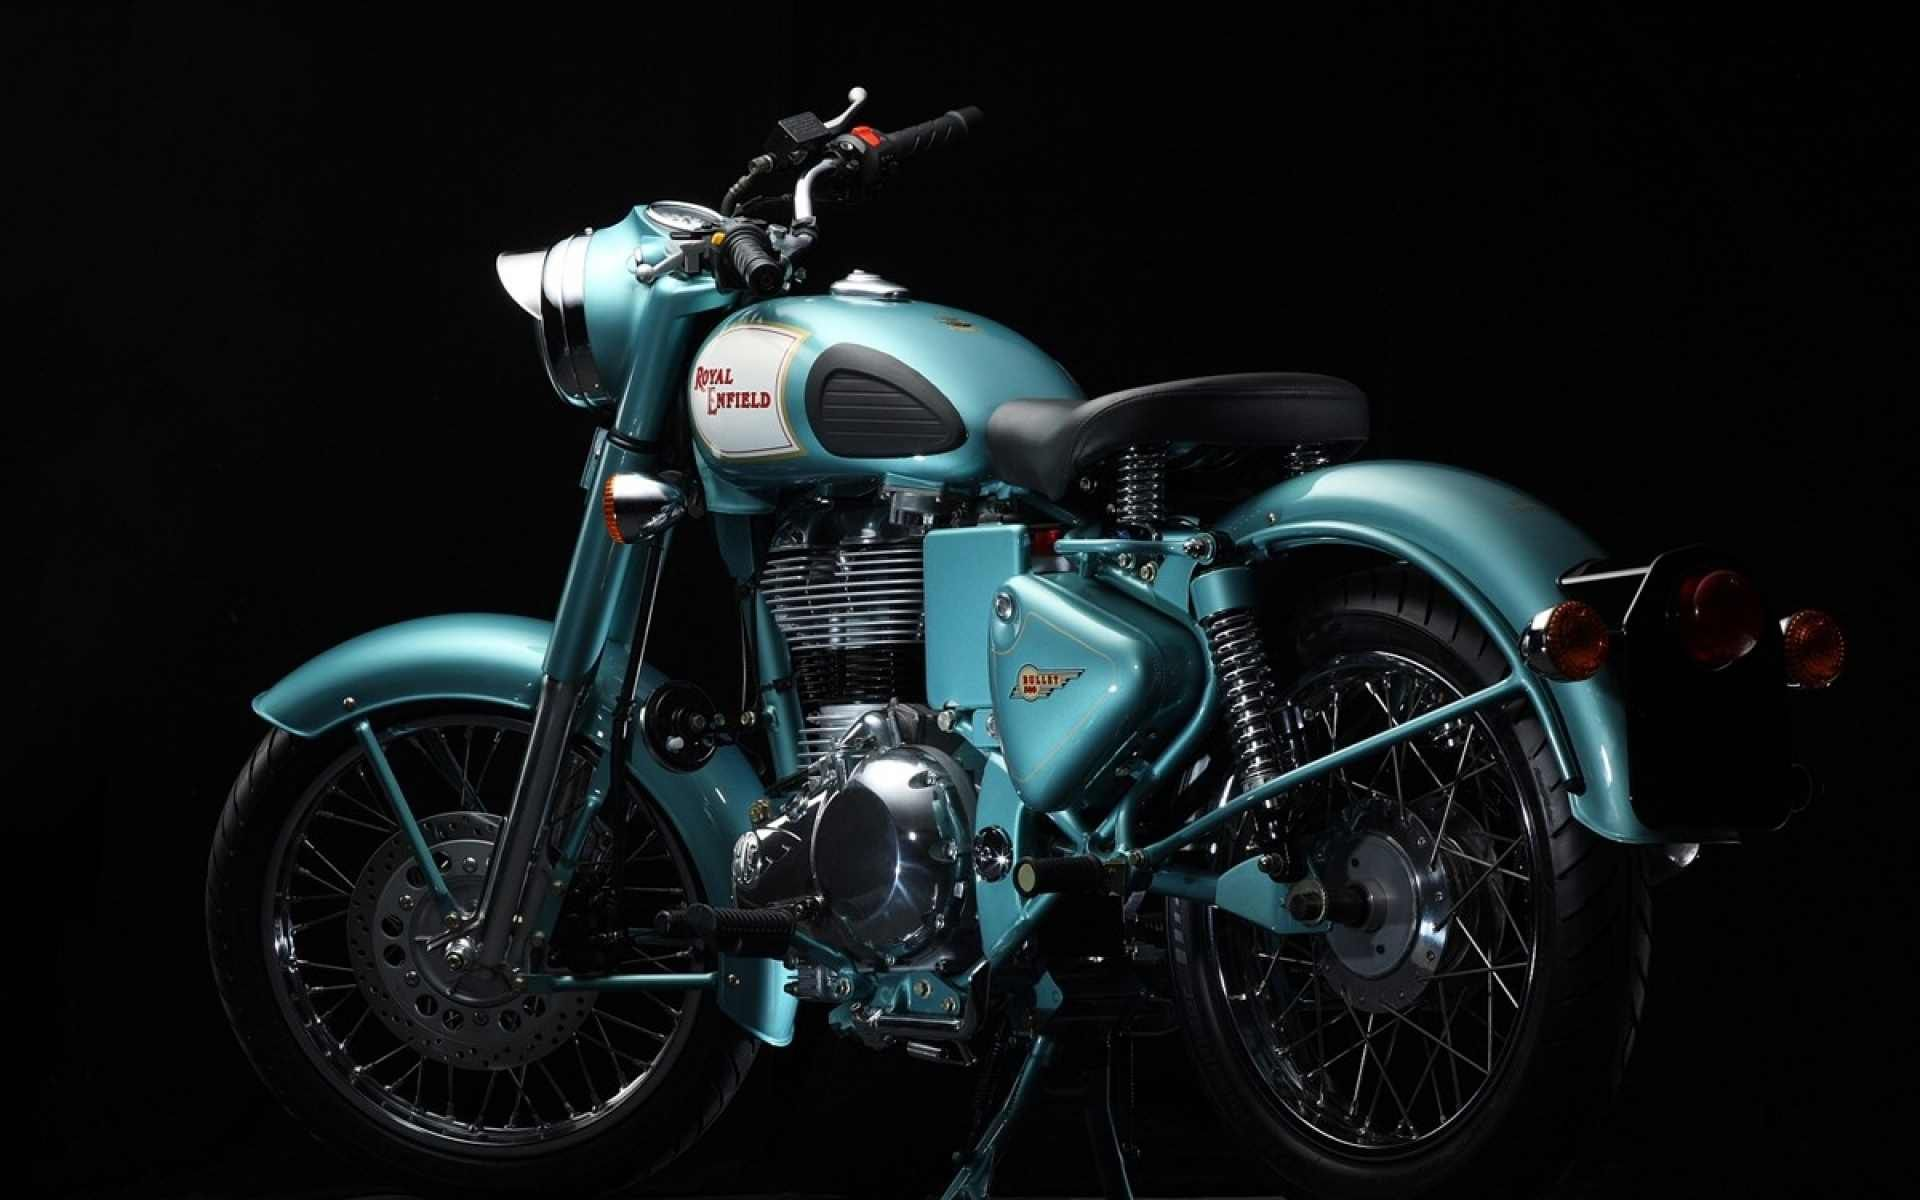 Bullet Bike Wallpaper HD Collection Of Royal Enfiled Bullet | All Wallpapers | Pinterest ...